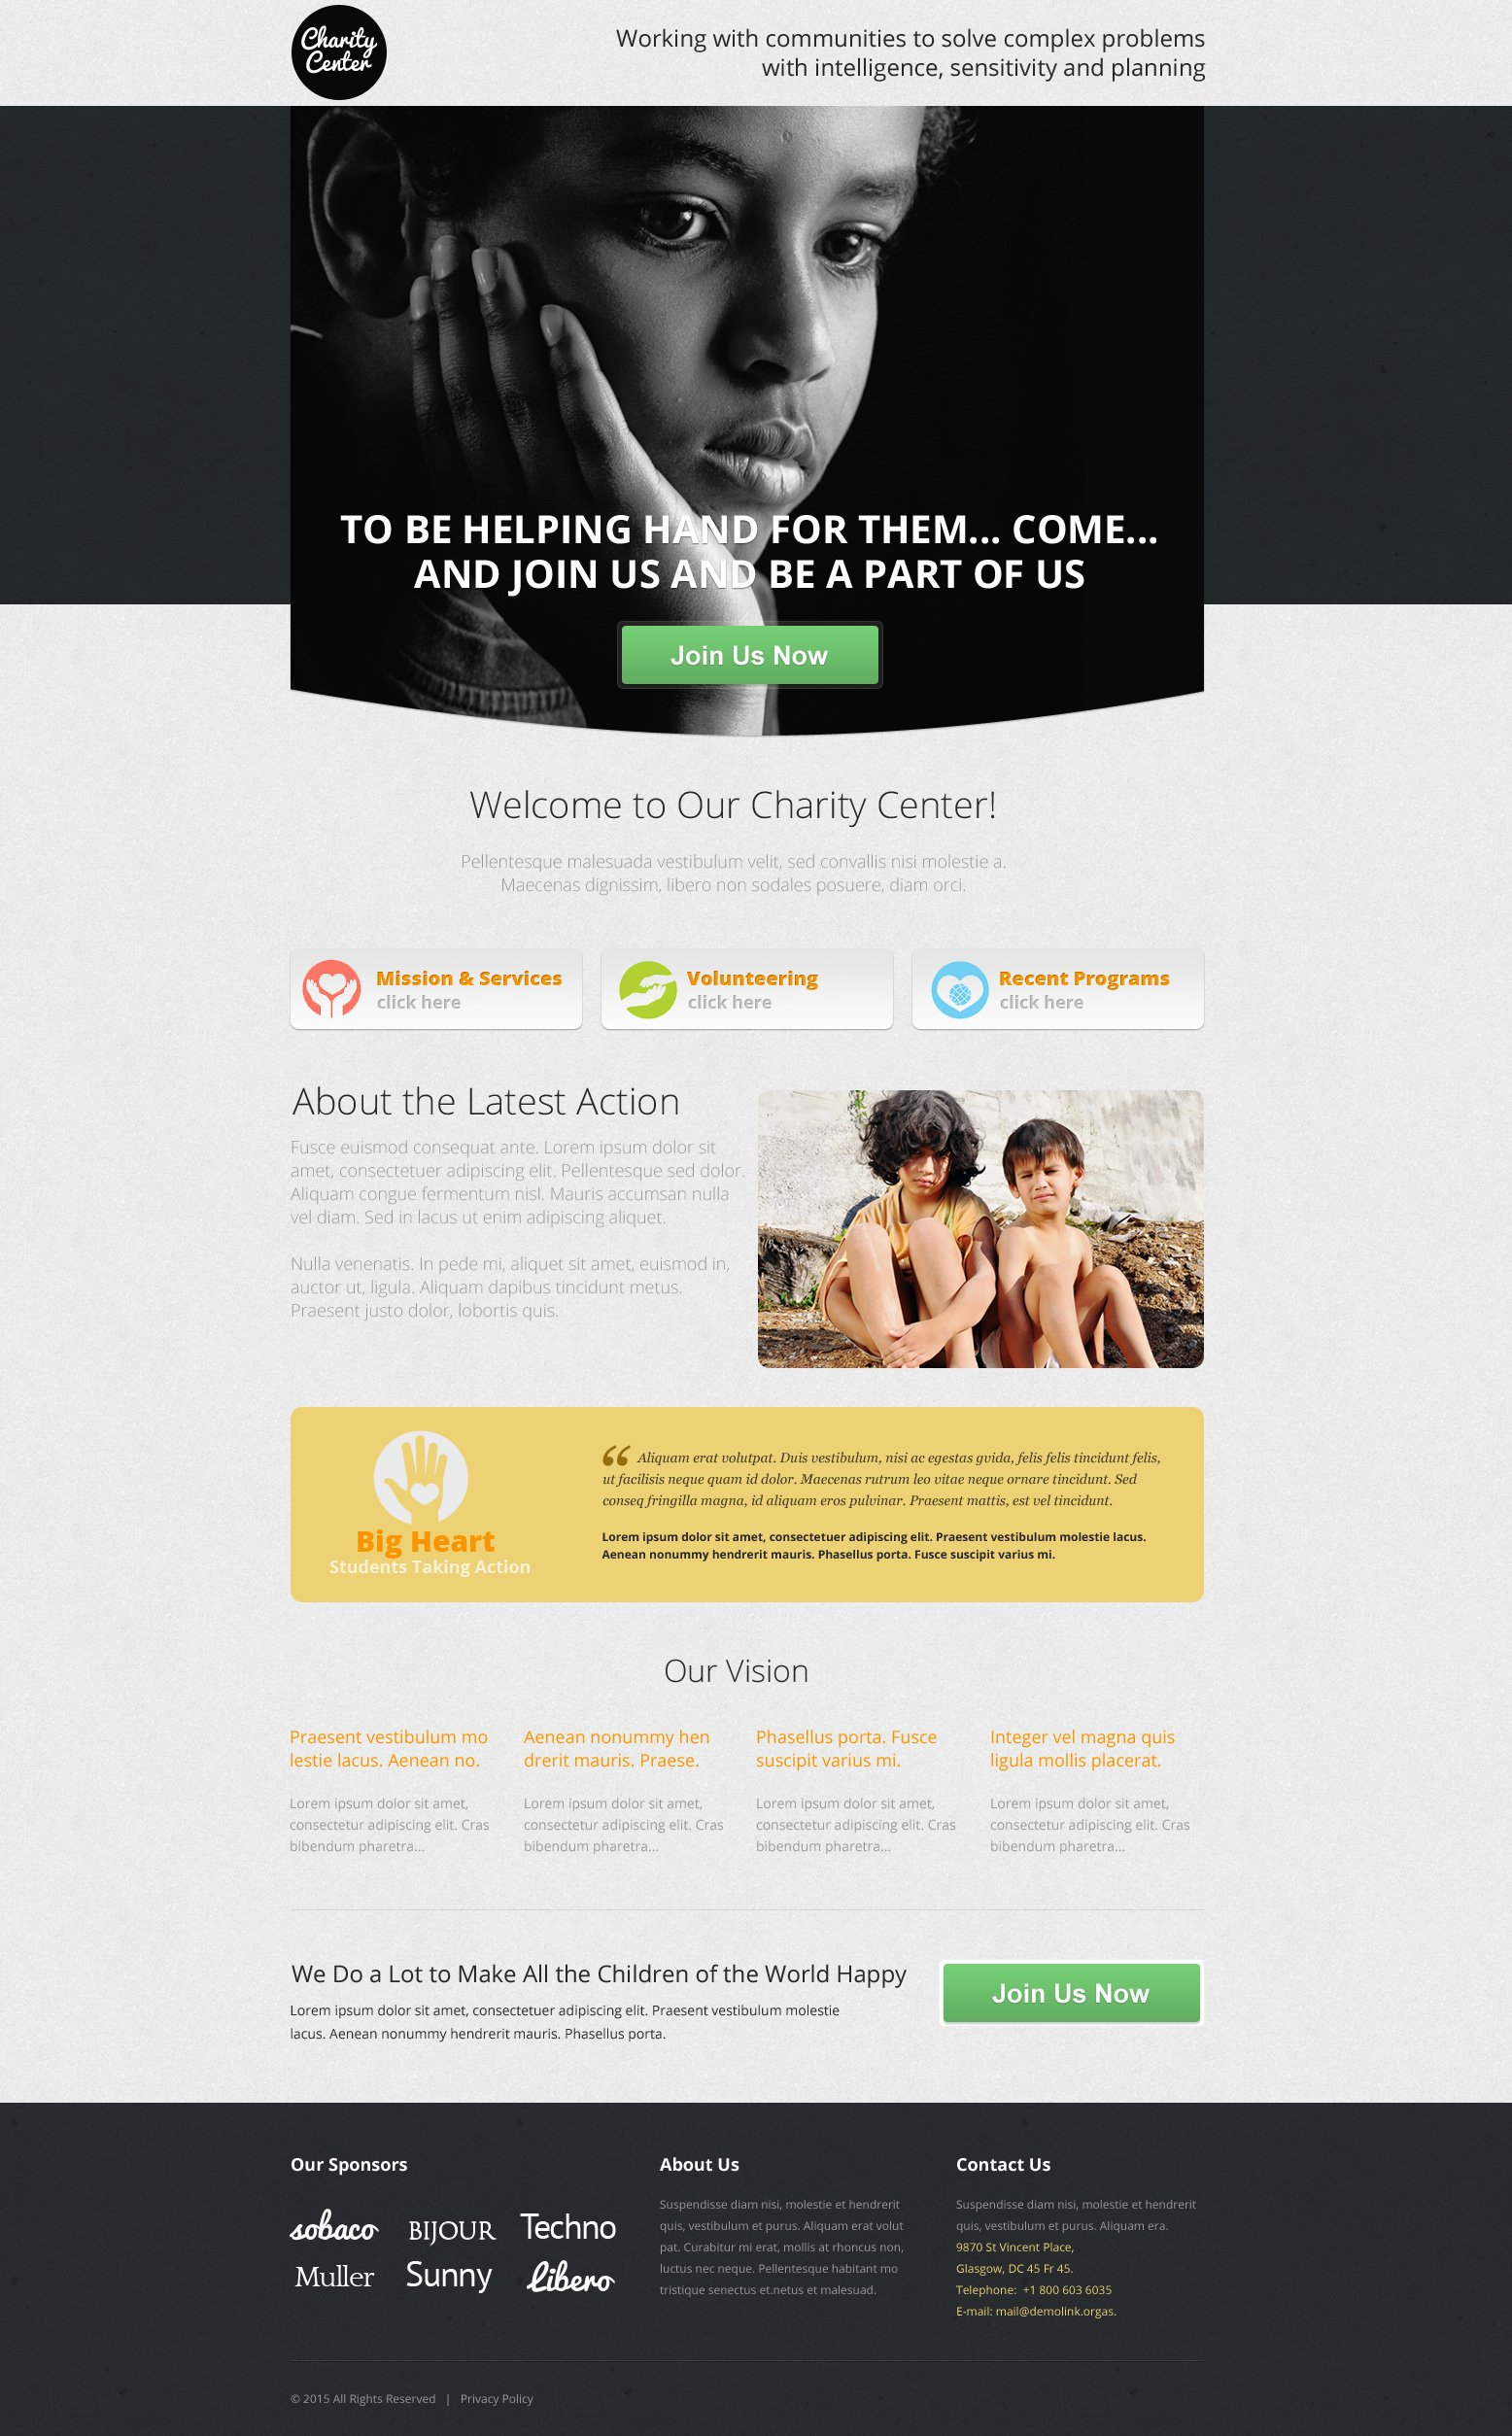 The Charity Company Unbounce Template Design 53187, one of the best Unbounce templates of its kind (charity), also known as charity company Unbounce template, charity company Unbounce template, organization Unbounce template, children Unbounce template, indigent Unbounce template, donation Unbounce template, adoption Unbounce template, relief Unbounce template, fund Unbounce template, pecuniary Unbounce template, aid Unbounce template, non-profit Unbounce template, mission Unbounce template, team Unbounce template, work Unbounce template, department Unbounce template, work Unbounce template, project Unbounce template, children Unbounce template, events Unbounce template, partner and related with charity company, charity company, organization, children, indigent, donation, adoption, relief, fund, pecuniary, aid, non-profit, mission, team, work, department, work, project, children, events, partner, etc.